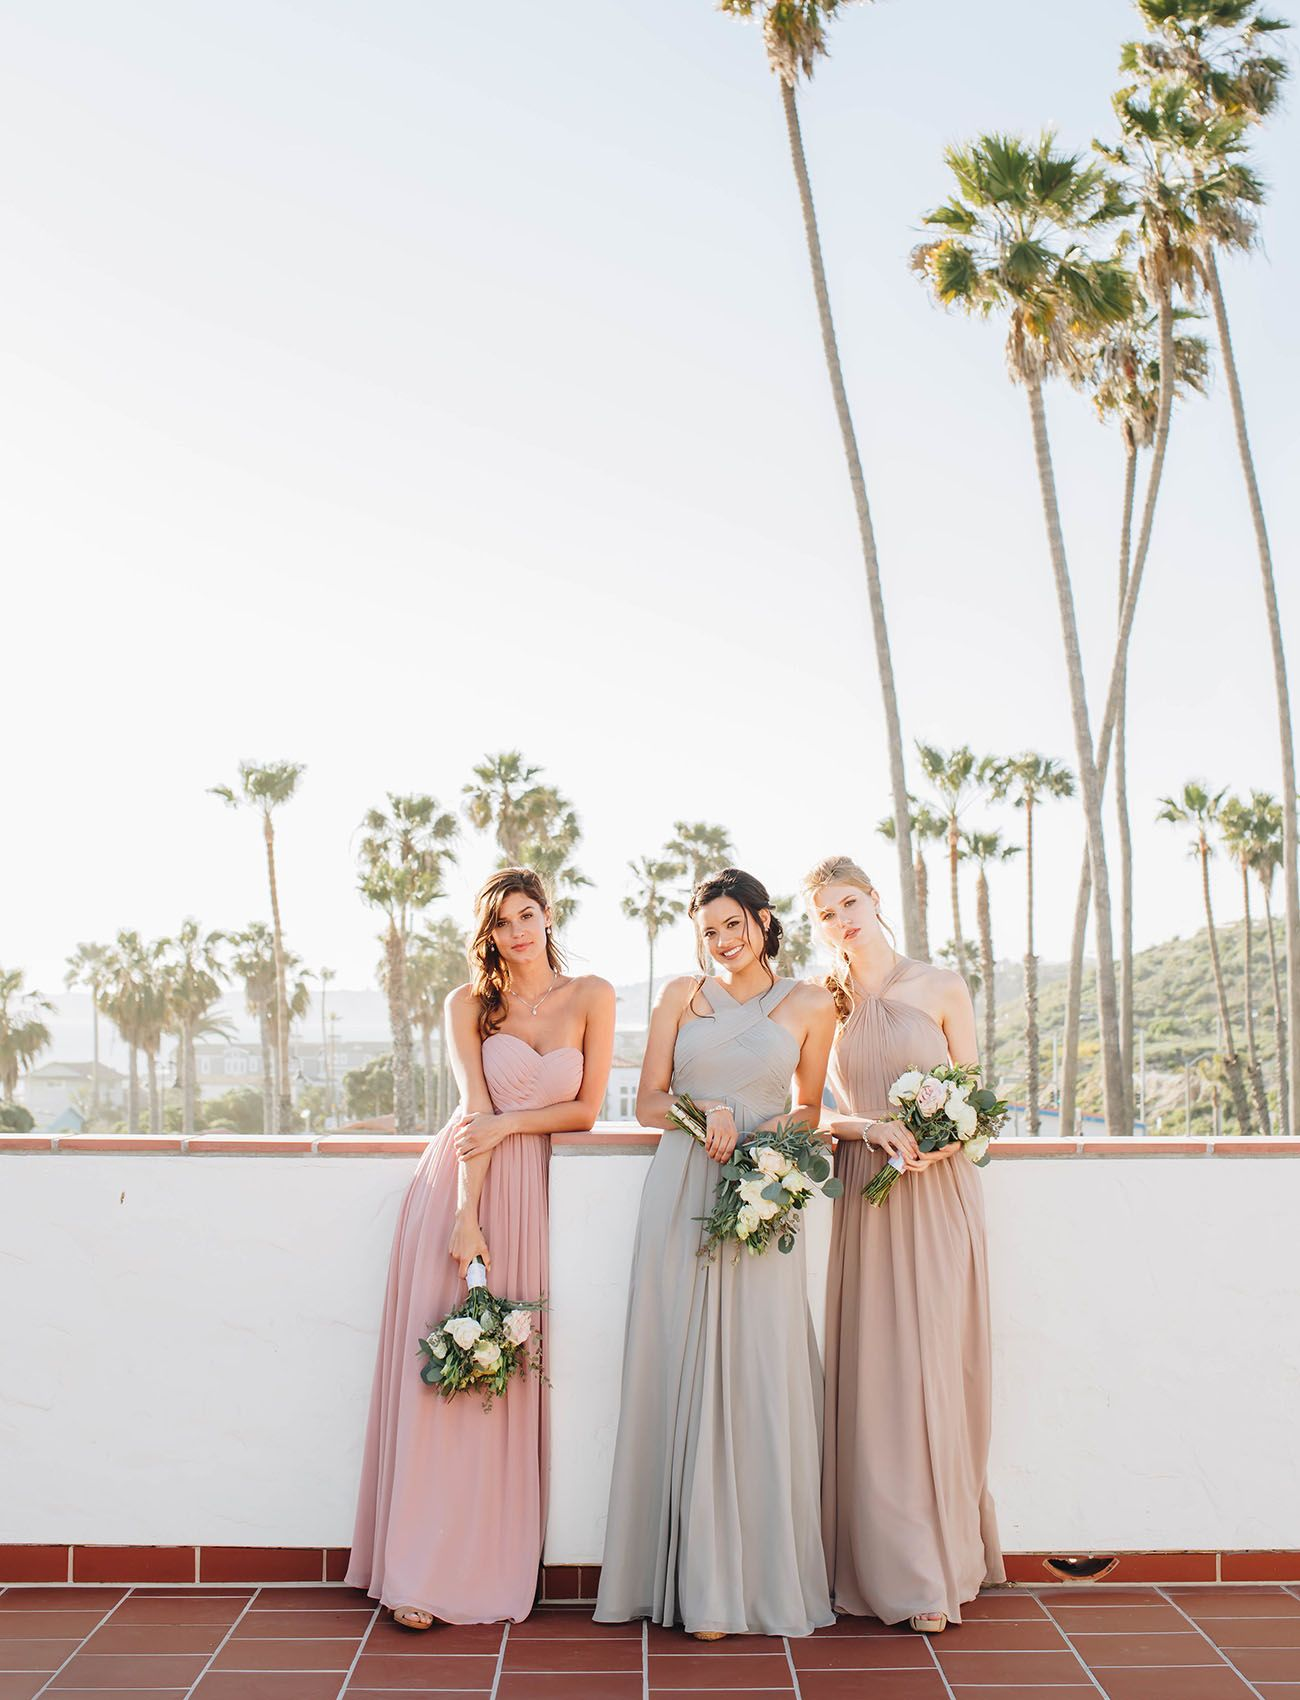 Dreamy Dresses for the Bride + Bridesmaids from Azazie | Wedding ...